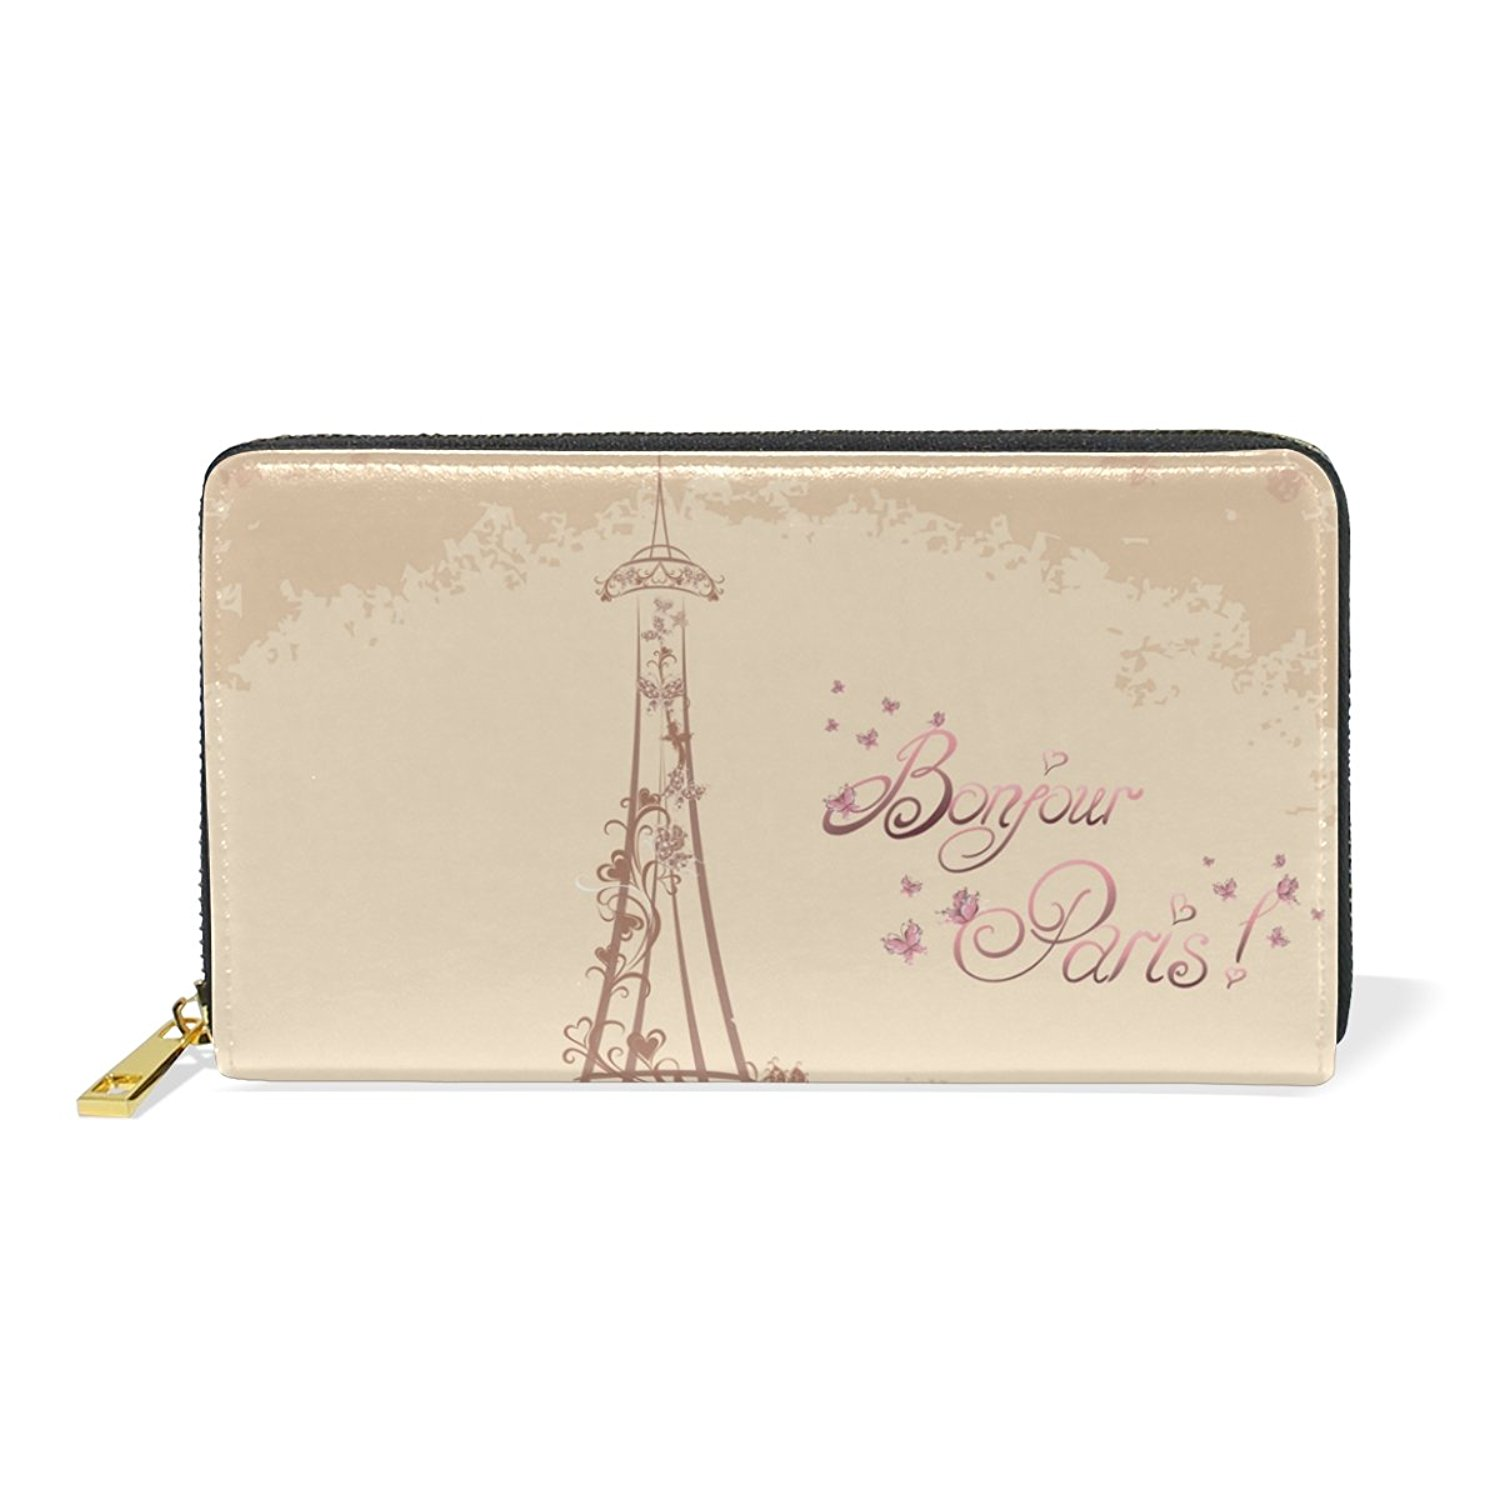 MAPOLO Bonjour Paris Tower Eiffel And Bicycle Print Womens Clutch Purses Organizer And Handbags Zip Around Wallet